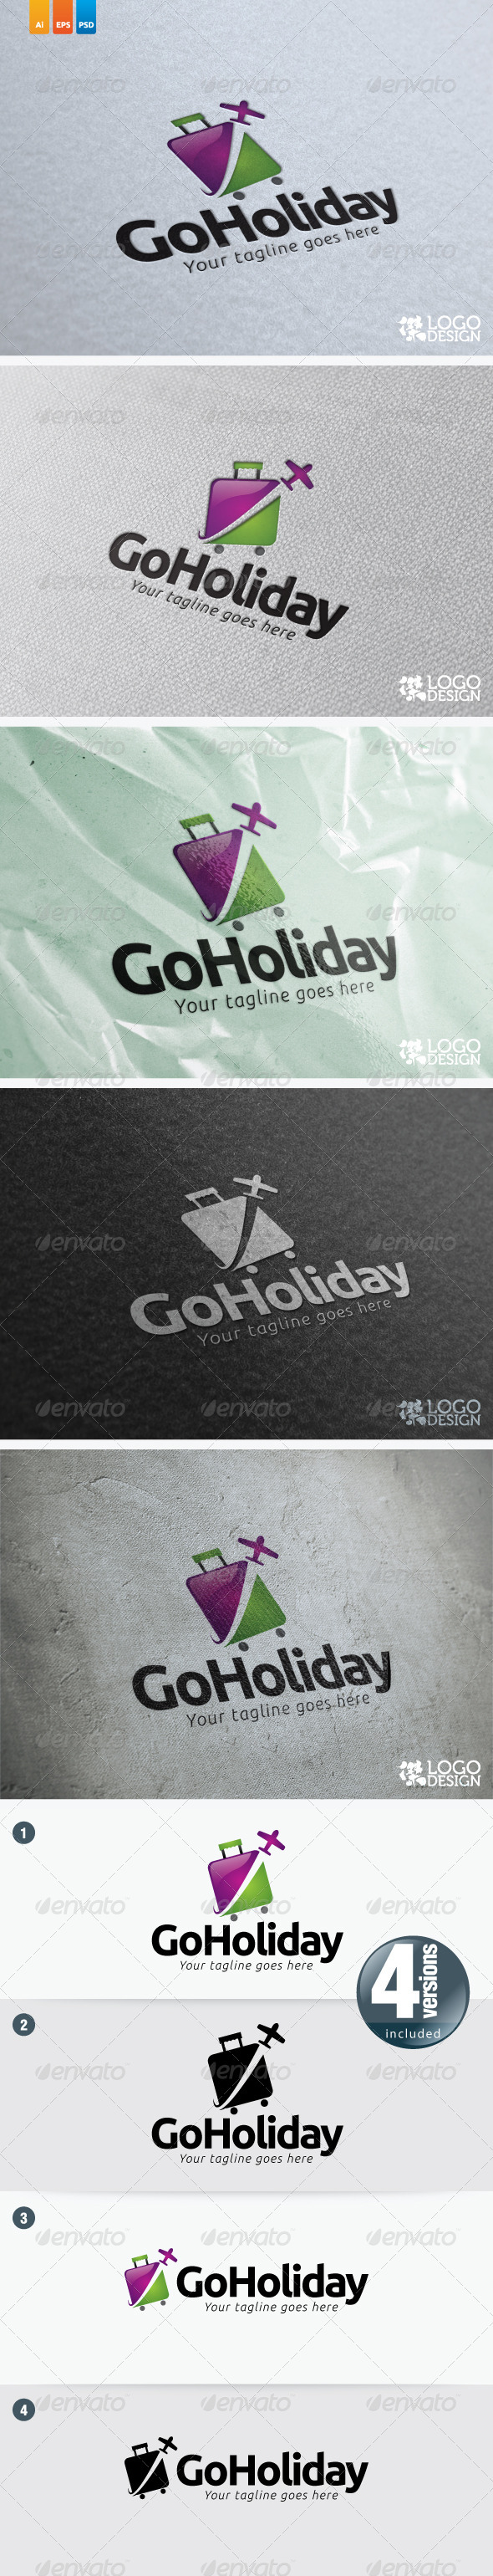 GraphicRiver Go Holiday 6249009